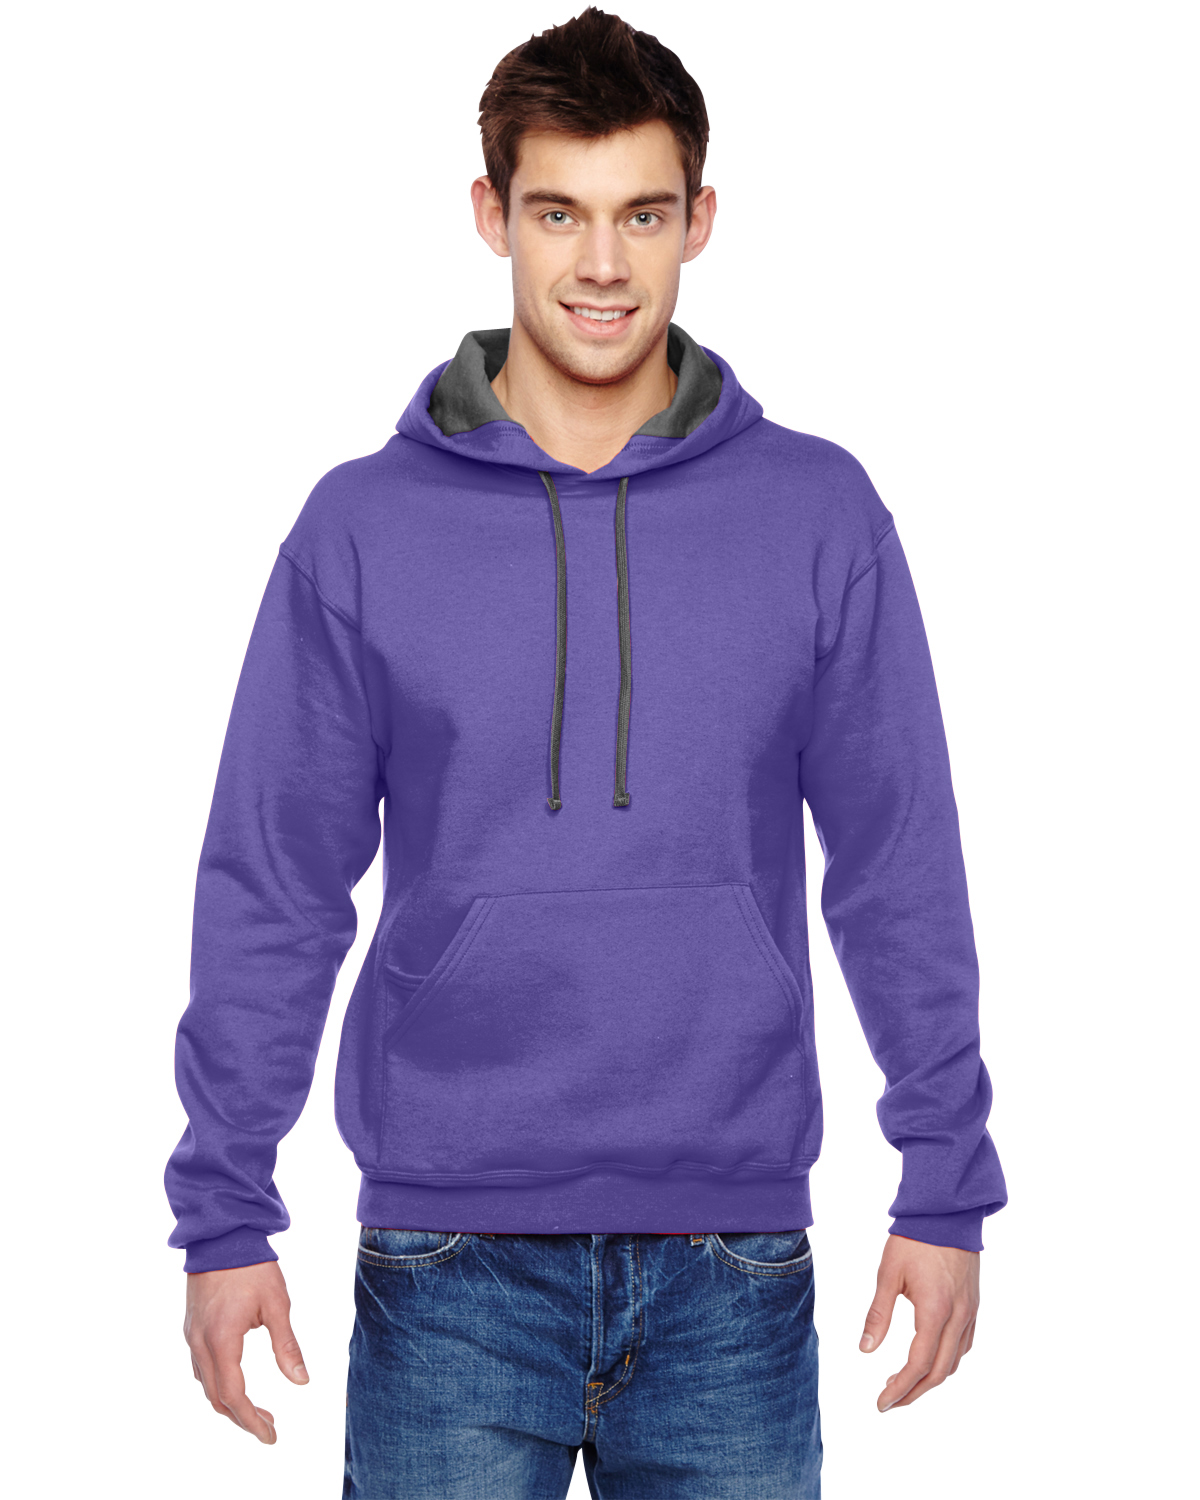 Fruit Of The Loom 7.2 Oz. Sofspun™ Hooded Sweatshirt